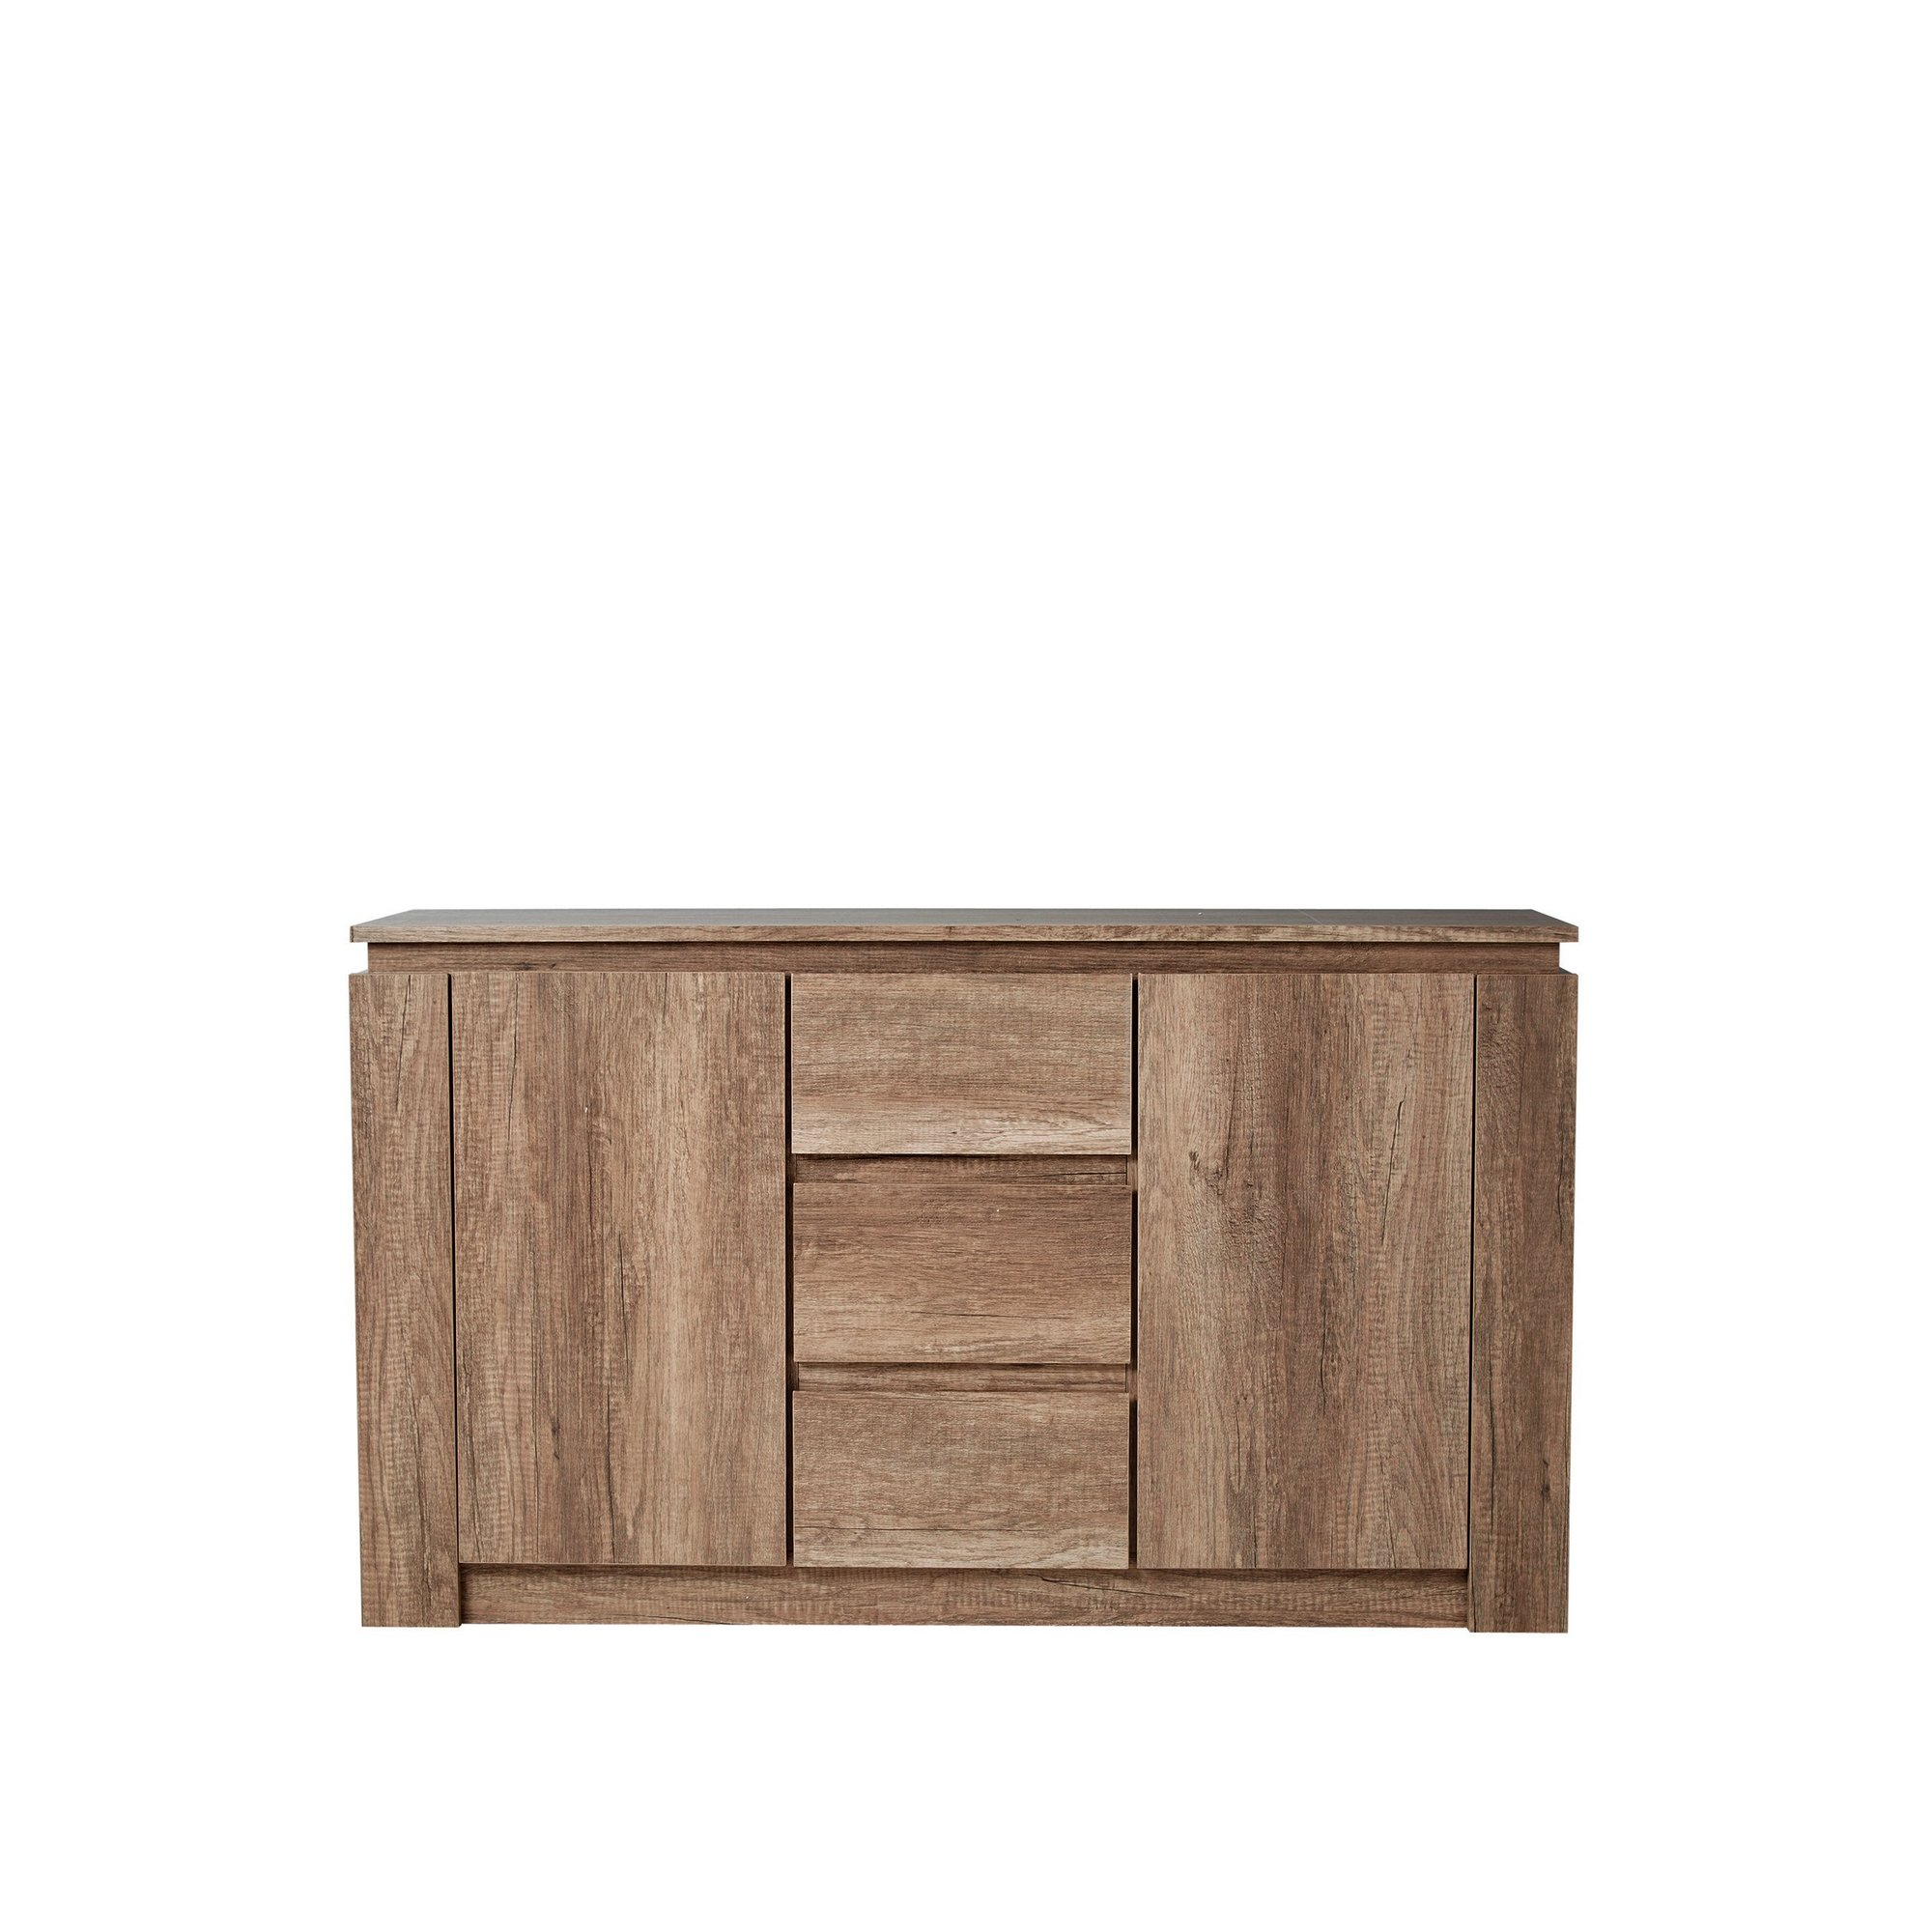 Image of Canyon Oak Sideboard